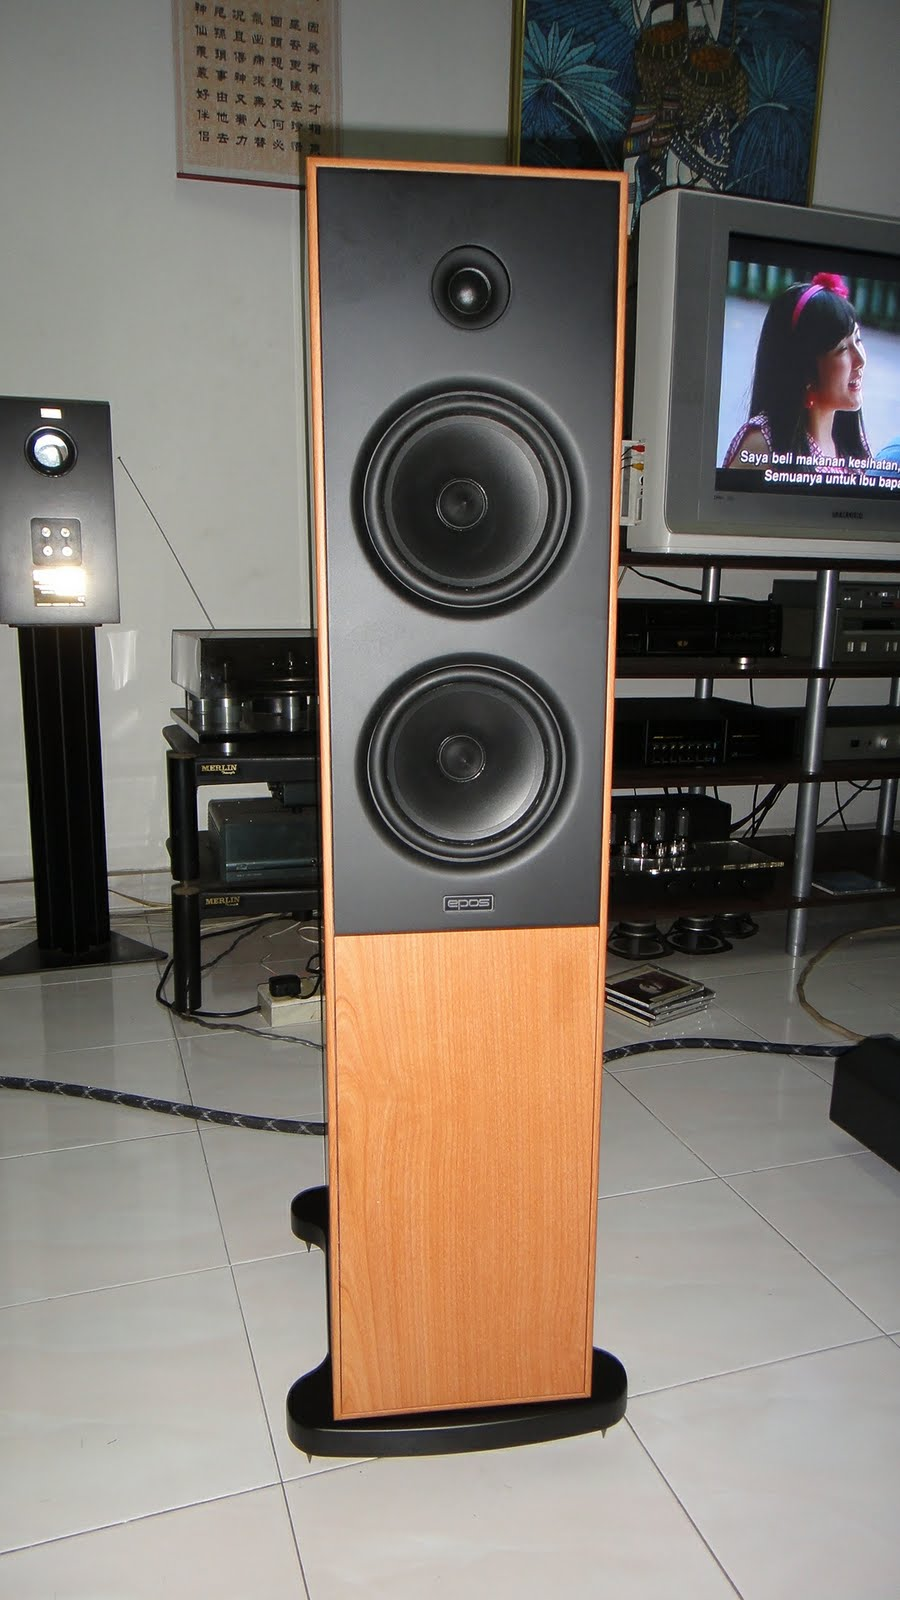 wiredstate audio community • view topic - epos speakers are back in